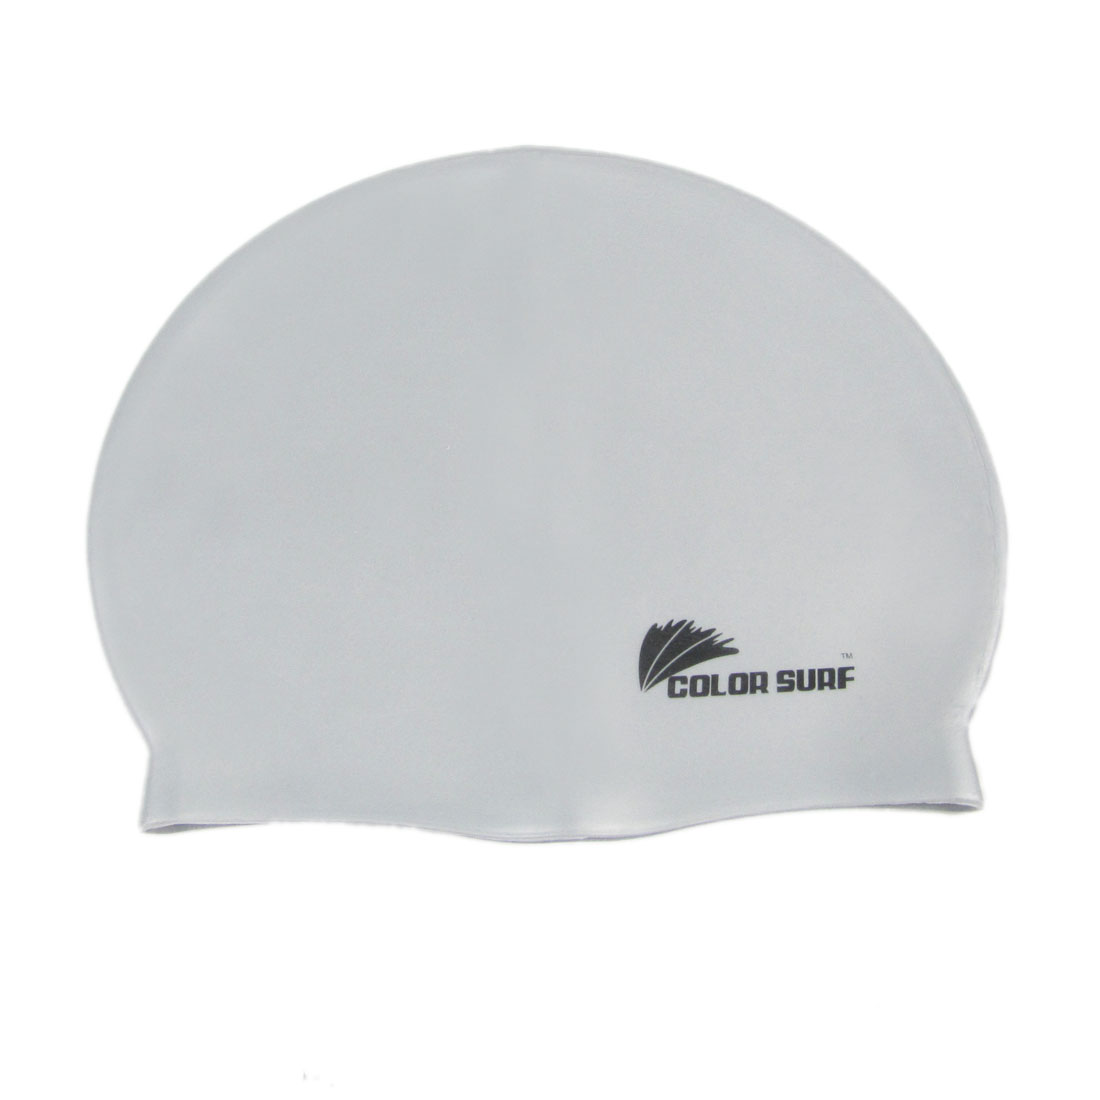 Dome Shaped Stretchy Swim Cap Light Gray for Swimming Diving Snorkeling